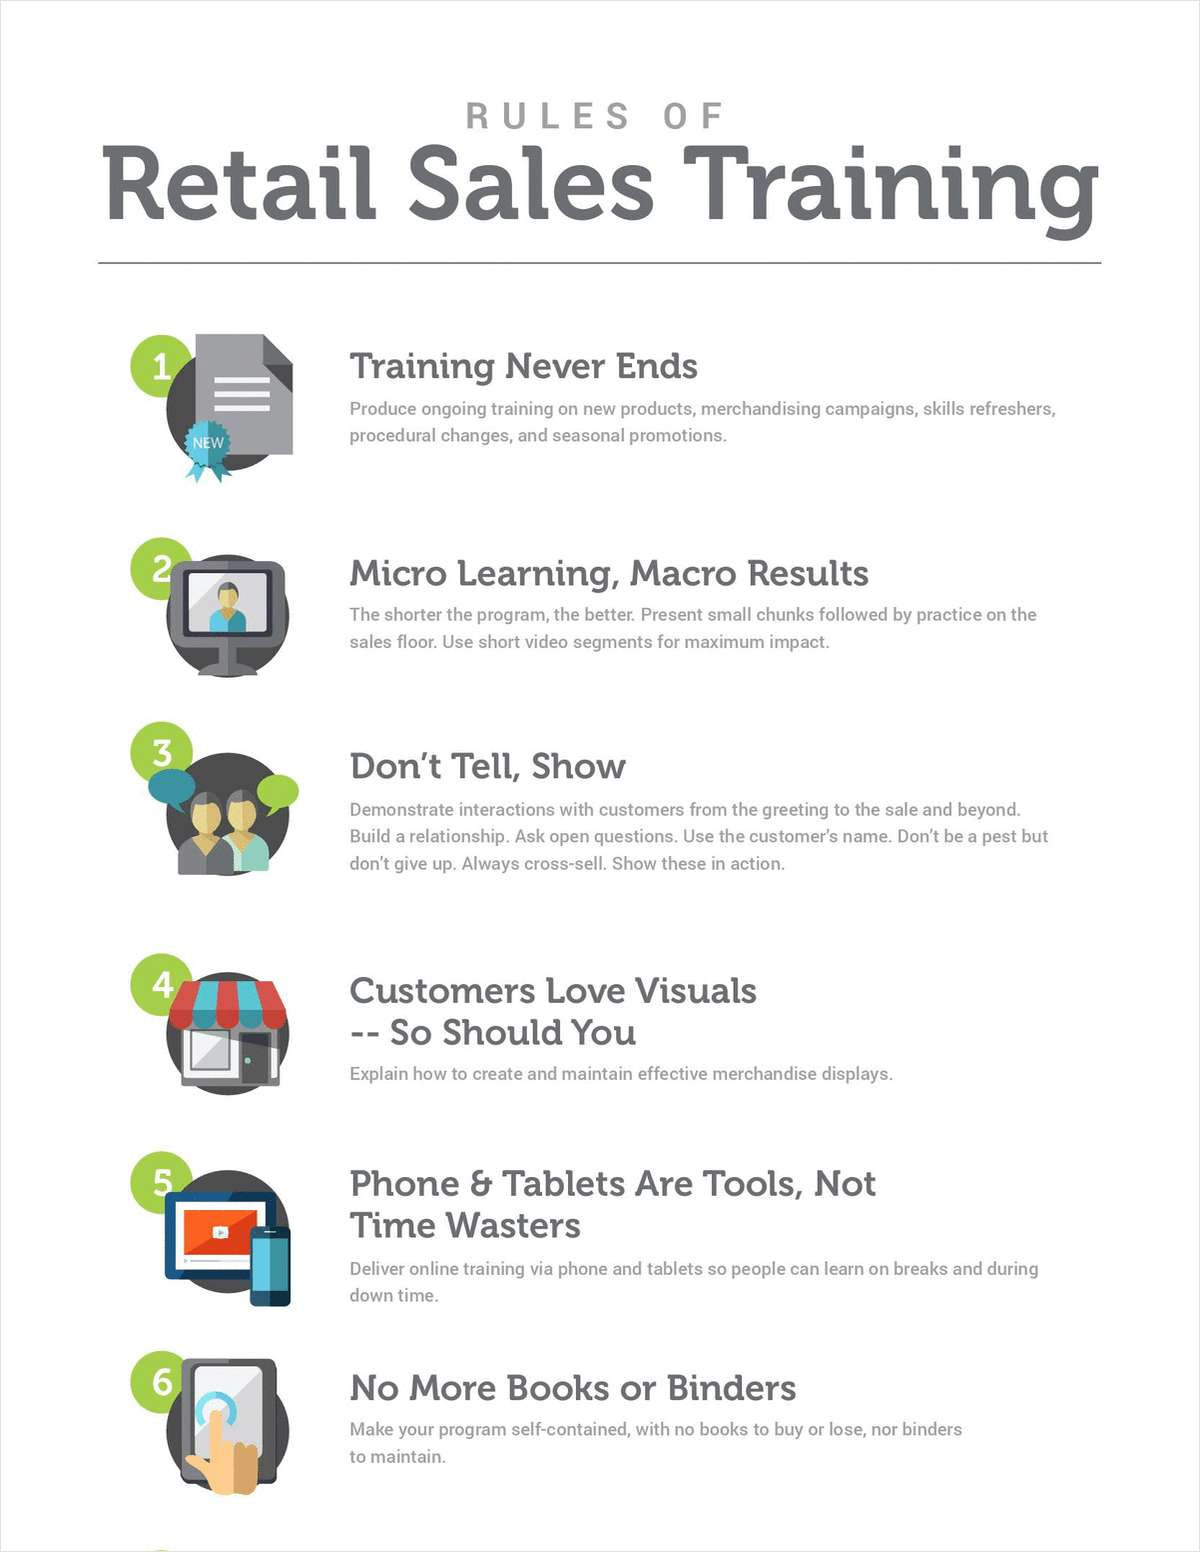 Rules of Retail Sales Training